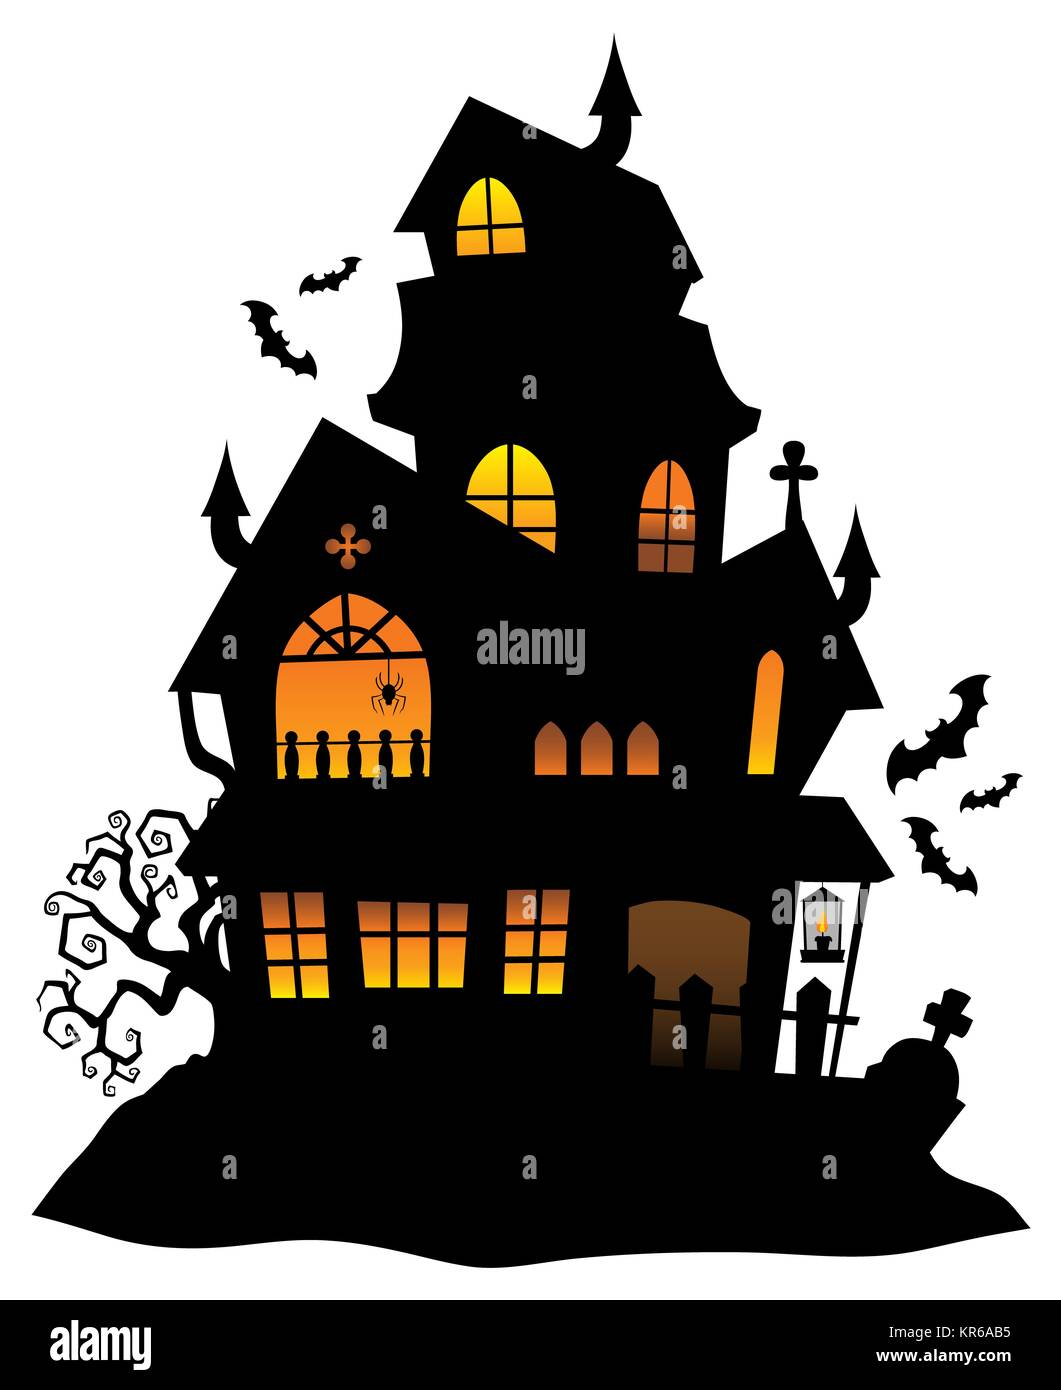 Haunted House Silhouette Theme Image 1